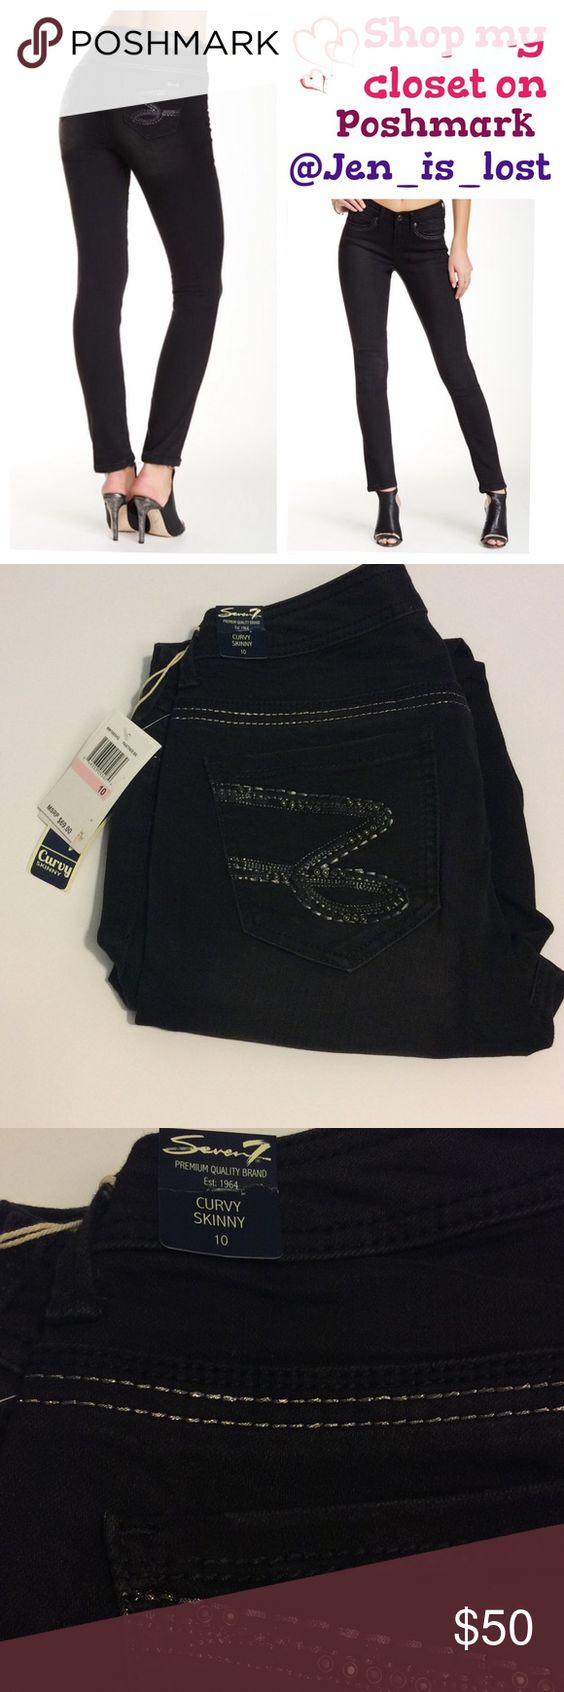 "Seven7 Black Curvy Skinny Jeans 10 Black curvy skinny jeans size 10. New with tags.  Waist measures 16"" (has about 1/2"" stretch)laying flat,  inseam is 31"".  🚫 TRADES 🚫 ✅ Reasonable Offers Are Considered.✅ Use the blue offer button. Seven7 Jeans Skinny"